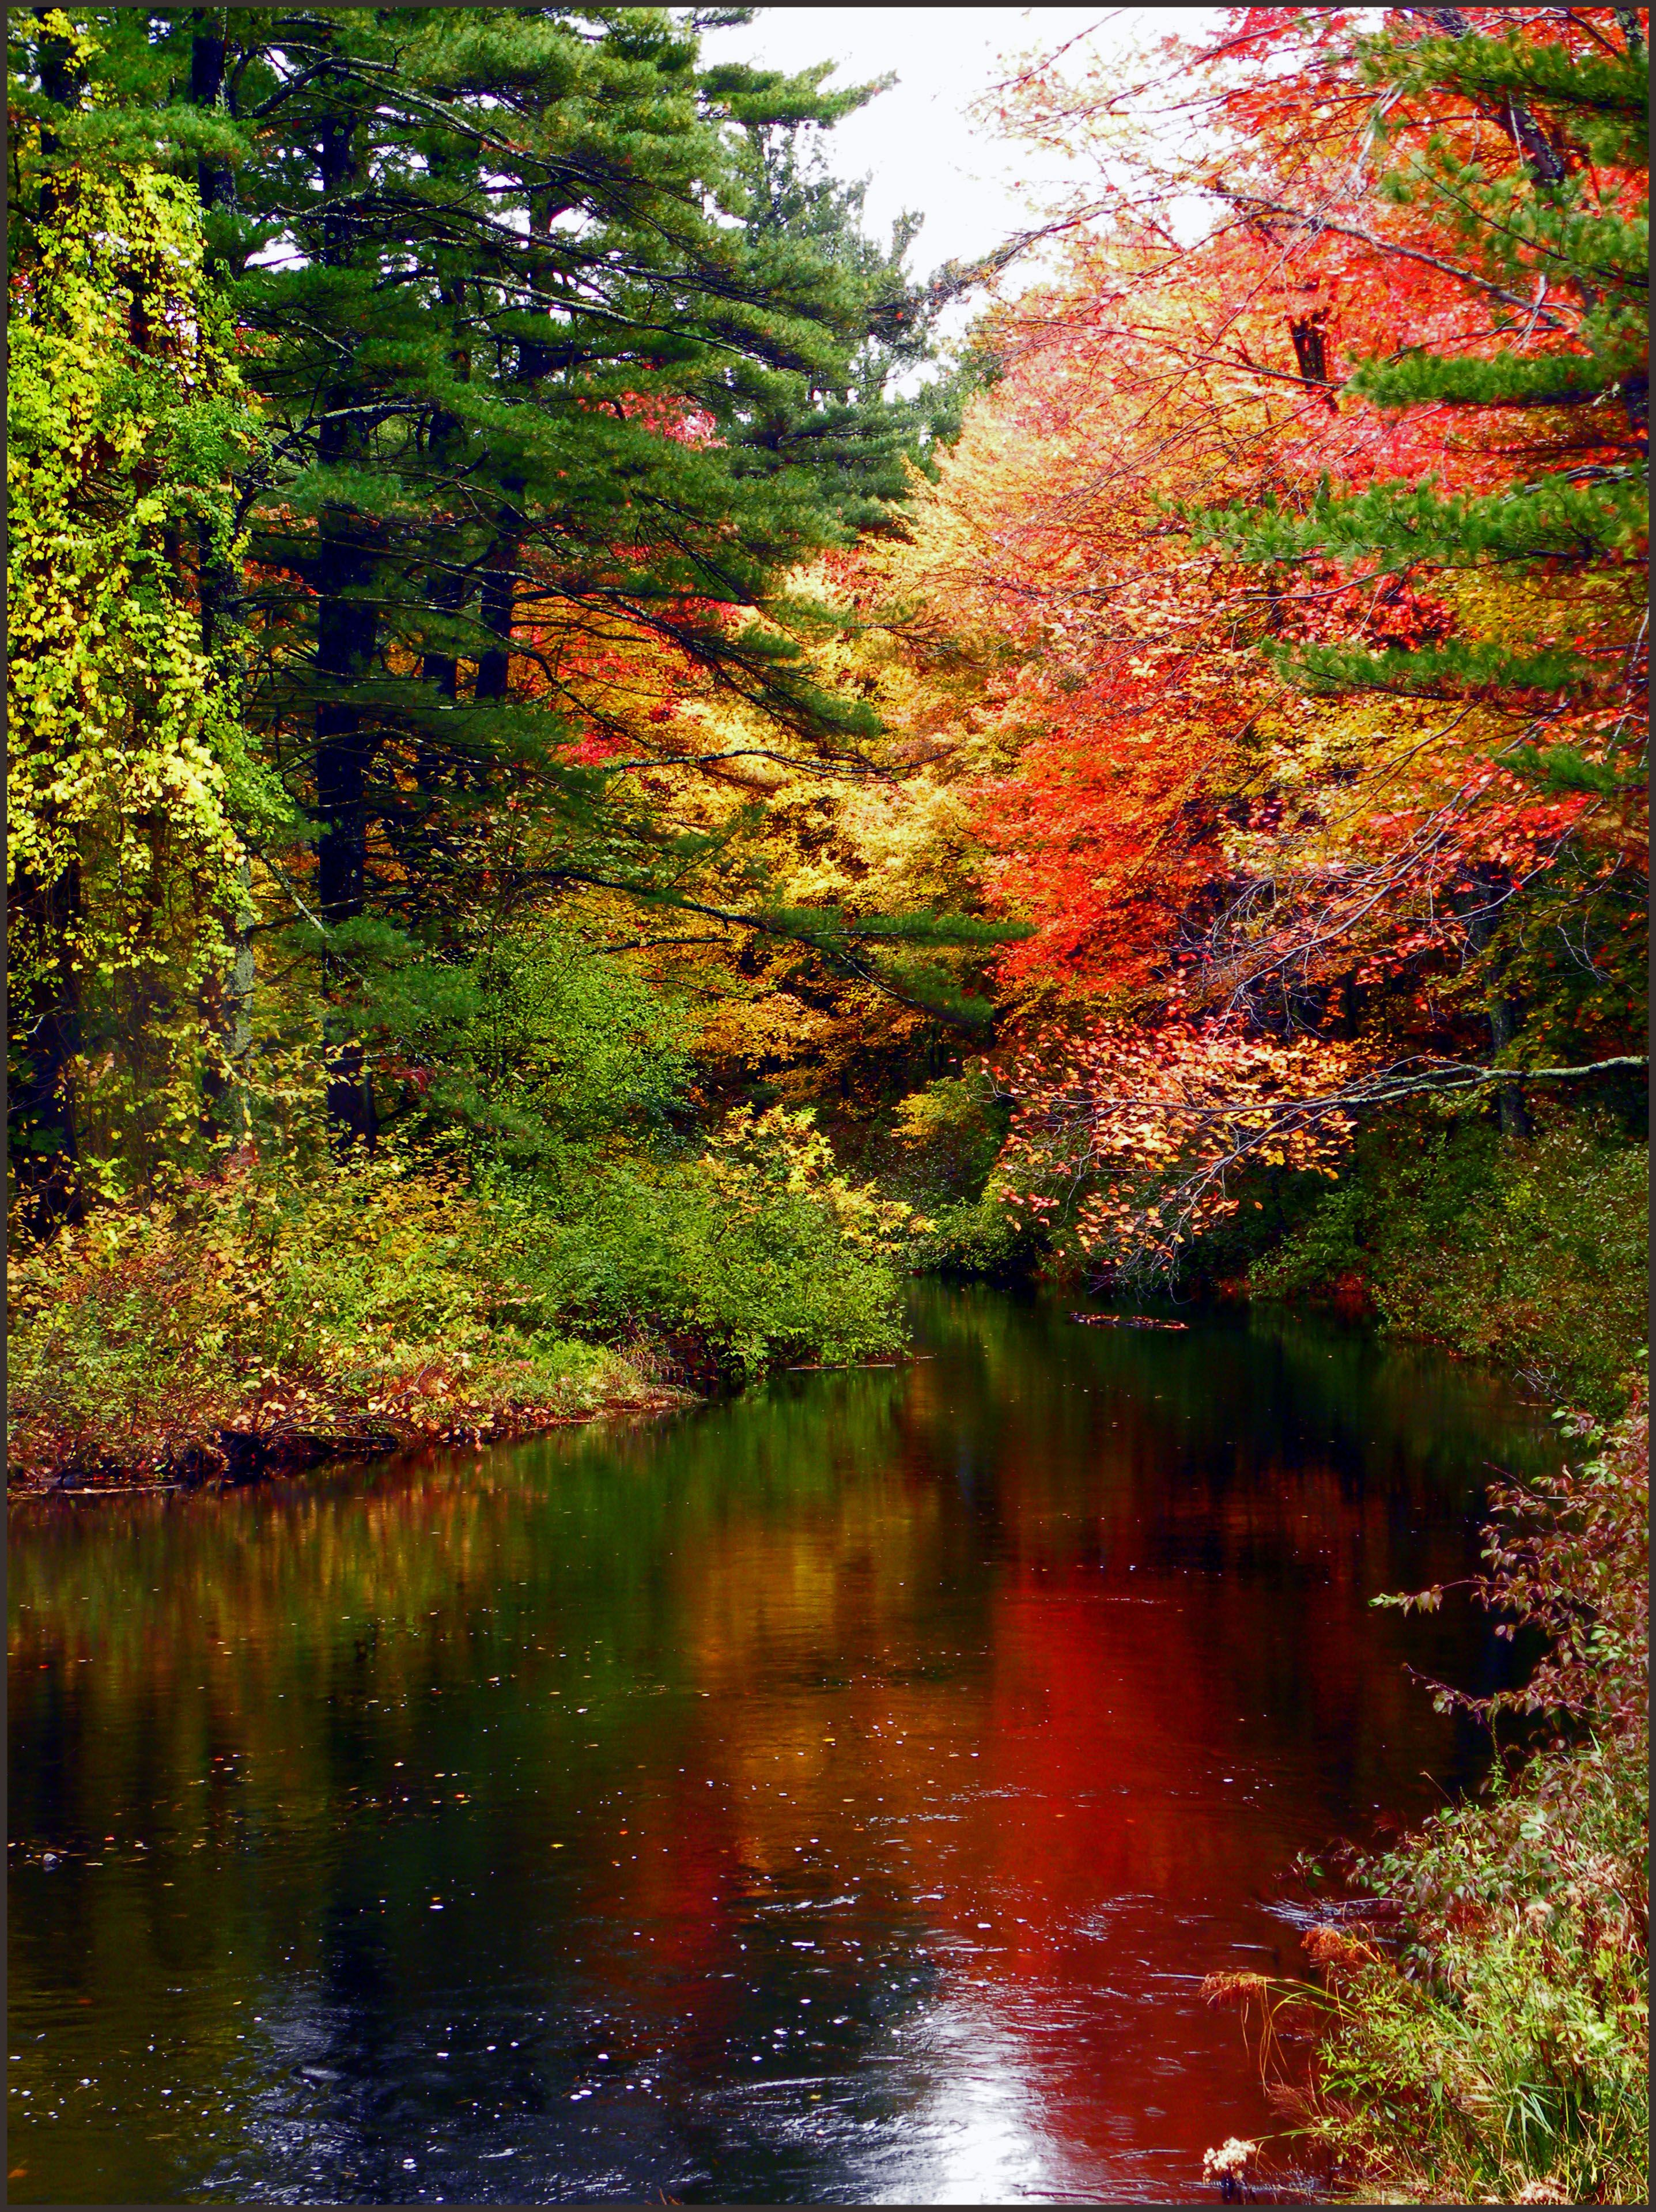 Beautiful Autumn River Autumn Forest River Nature Leaves Red Yellow Green Spruce Woods Love Landscape Photos Autumn Scenery Autumn Scenes Landscape